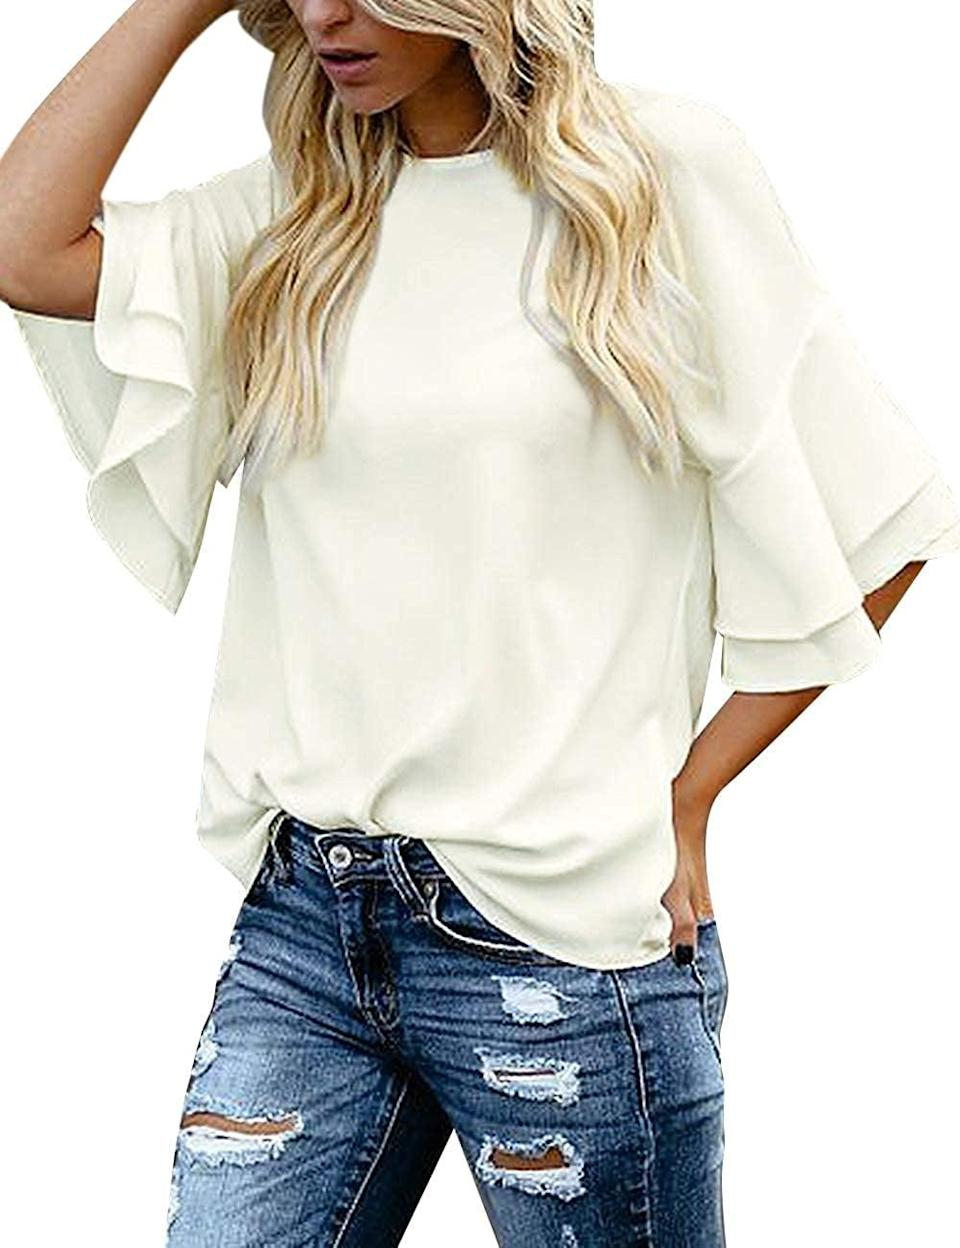 <p>This <span>Luvamia Blouse</span> ($20, originally $28) is polished and easy to move around in. From the voluminous sleeves to the relaxed silhouette, it looks quite comfortable.</p>